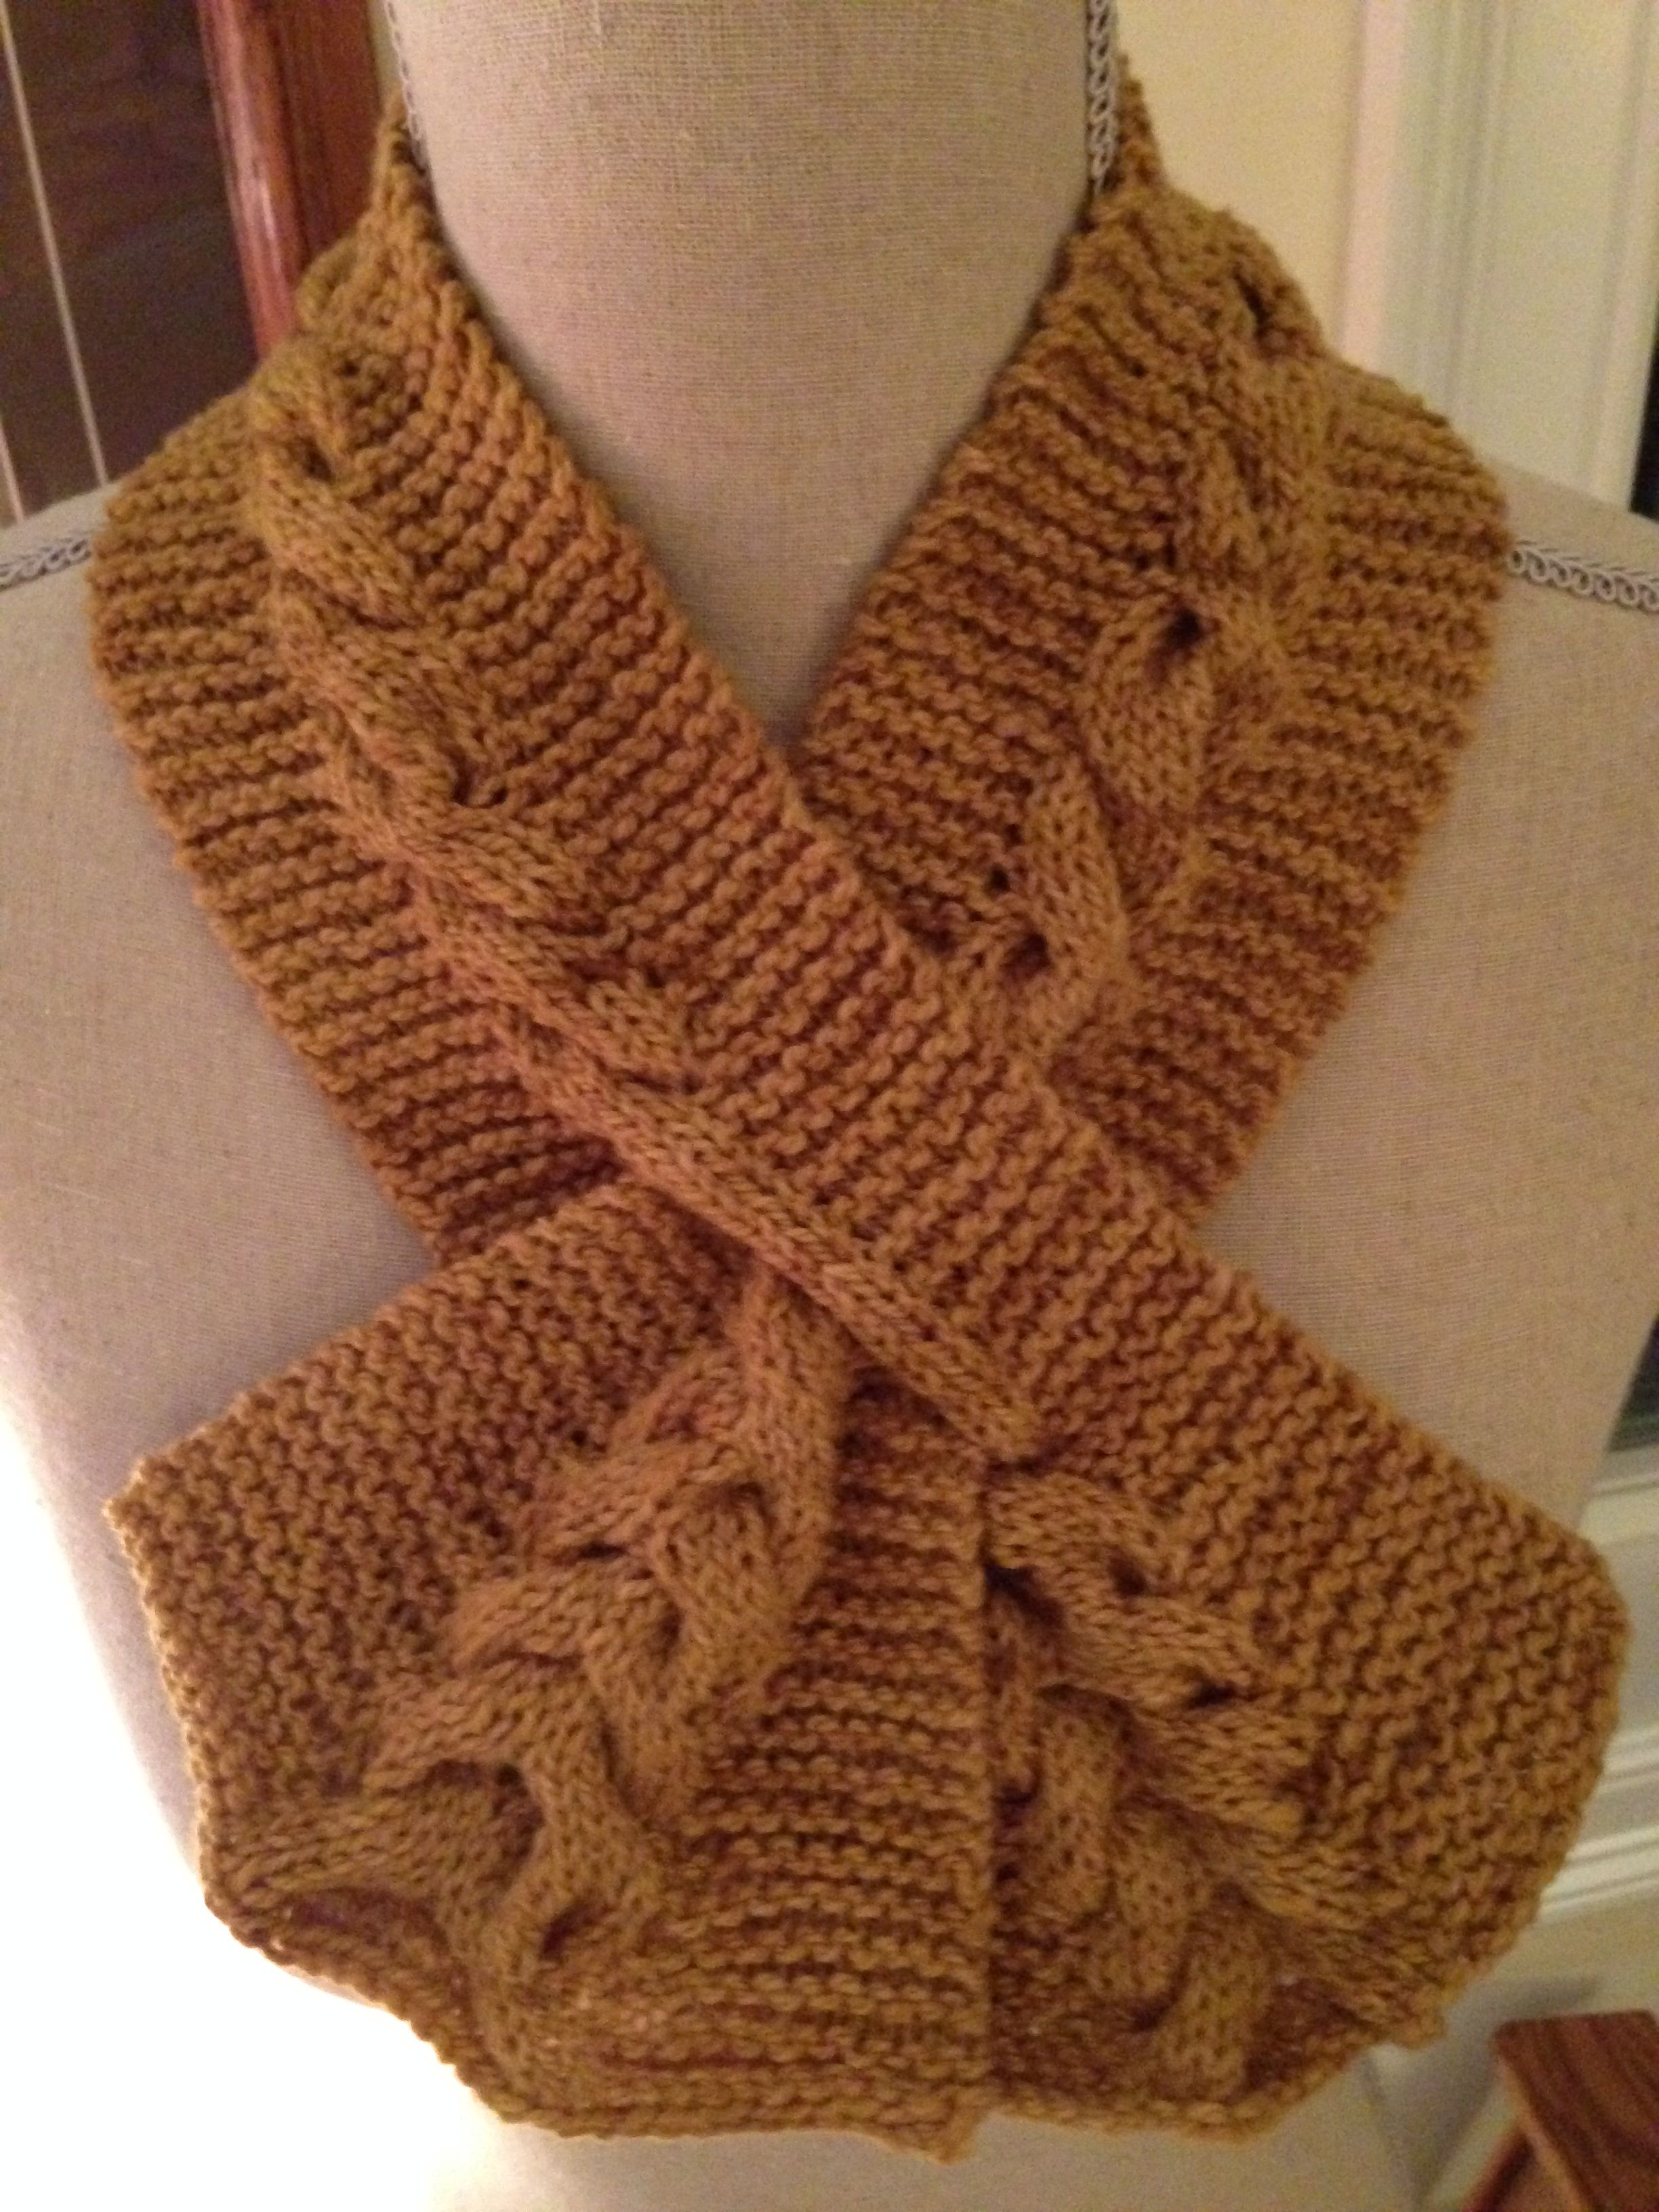 Cabled Keyhole Scarf I made from Knitspot pattern. | knitting 2 ...